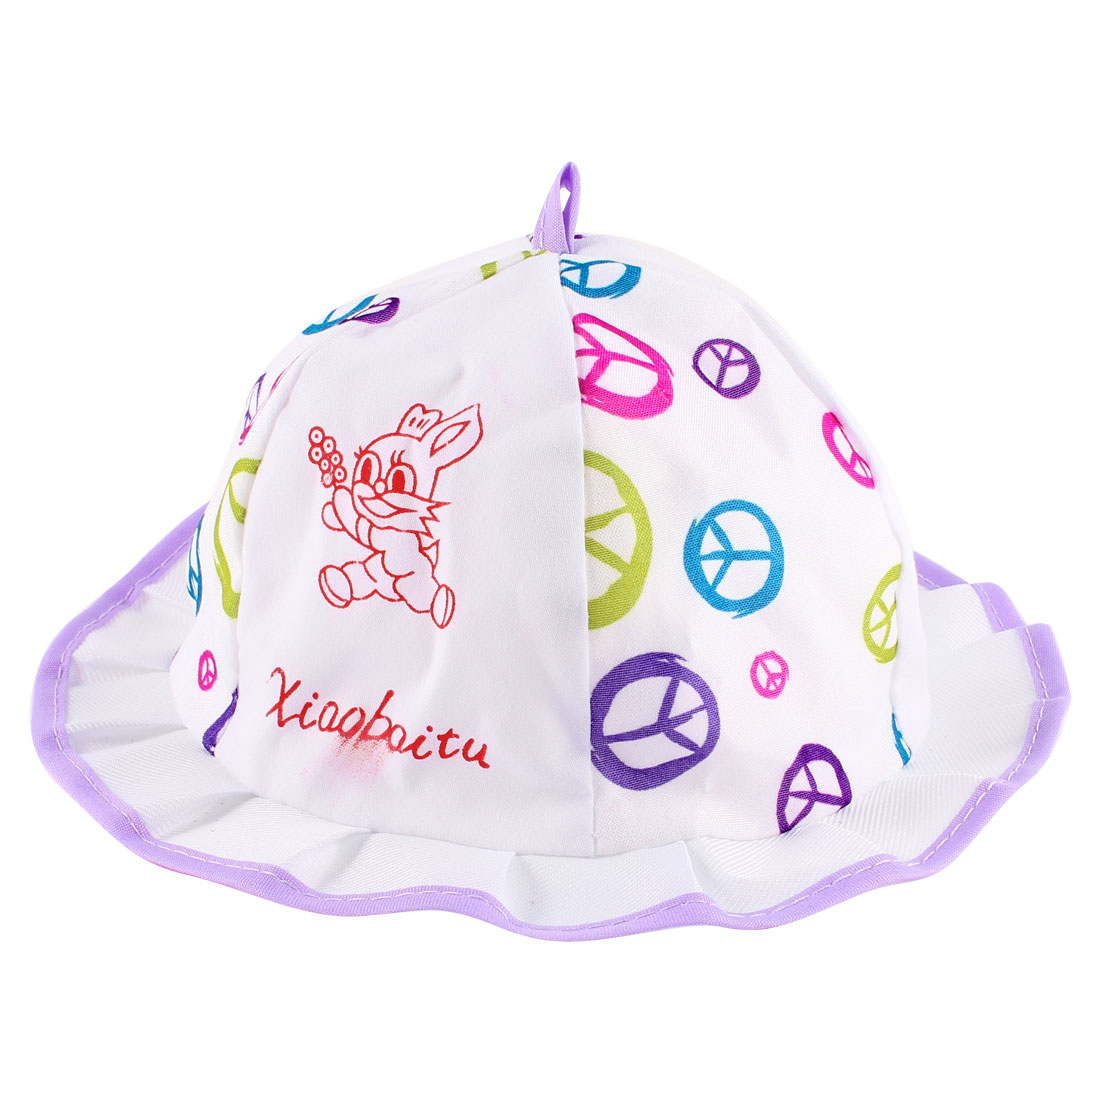 0-6 Months Baby Girls Peace Pattern Summer Cotton Hat White Purple w Neck Strap